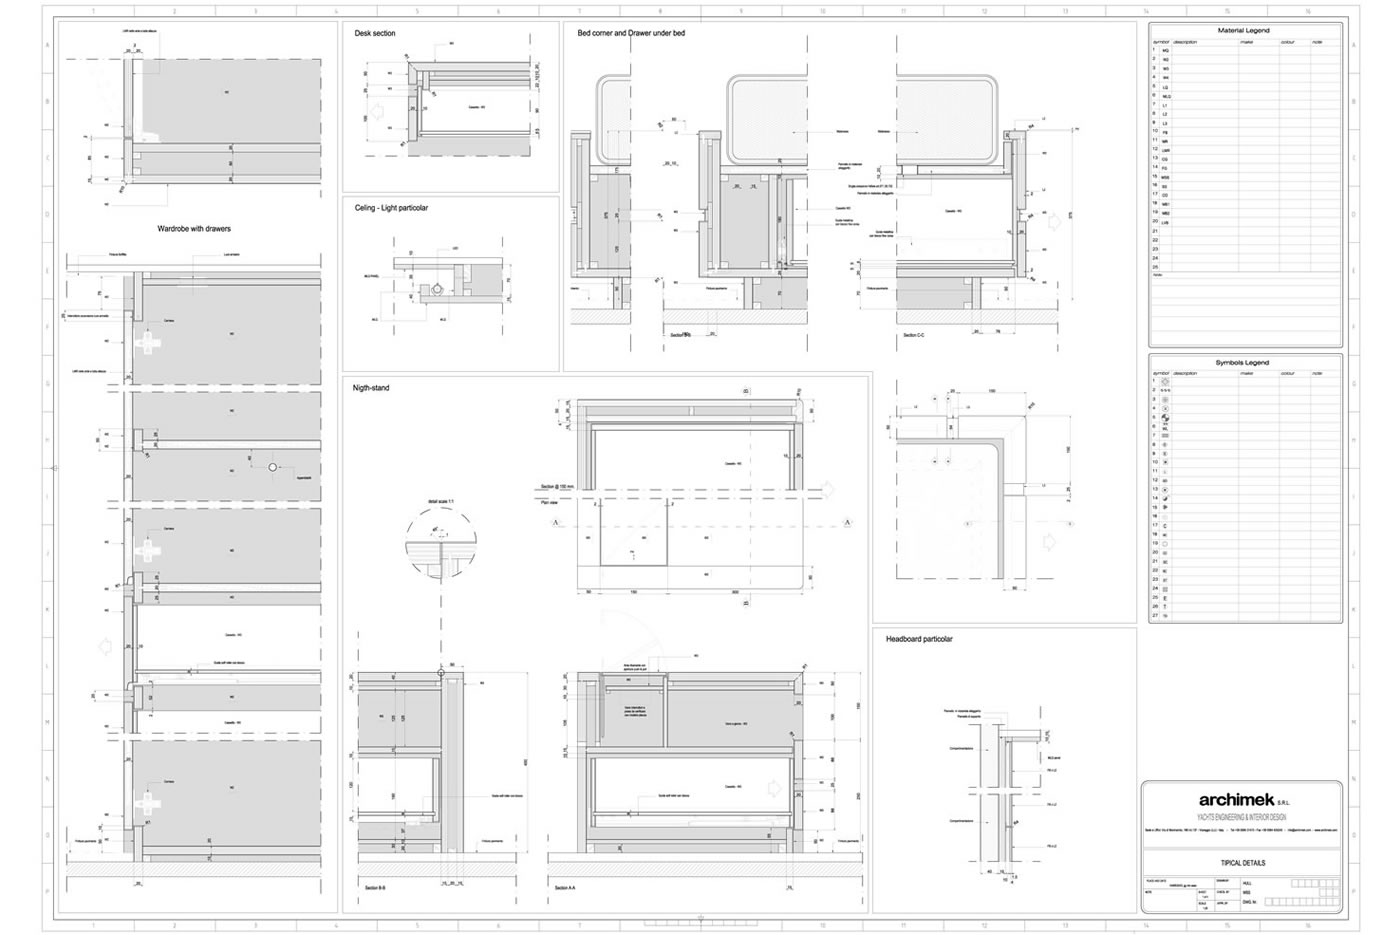 Architectural Shop Drawings Archimek